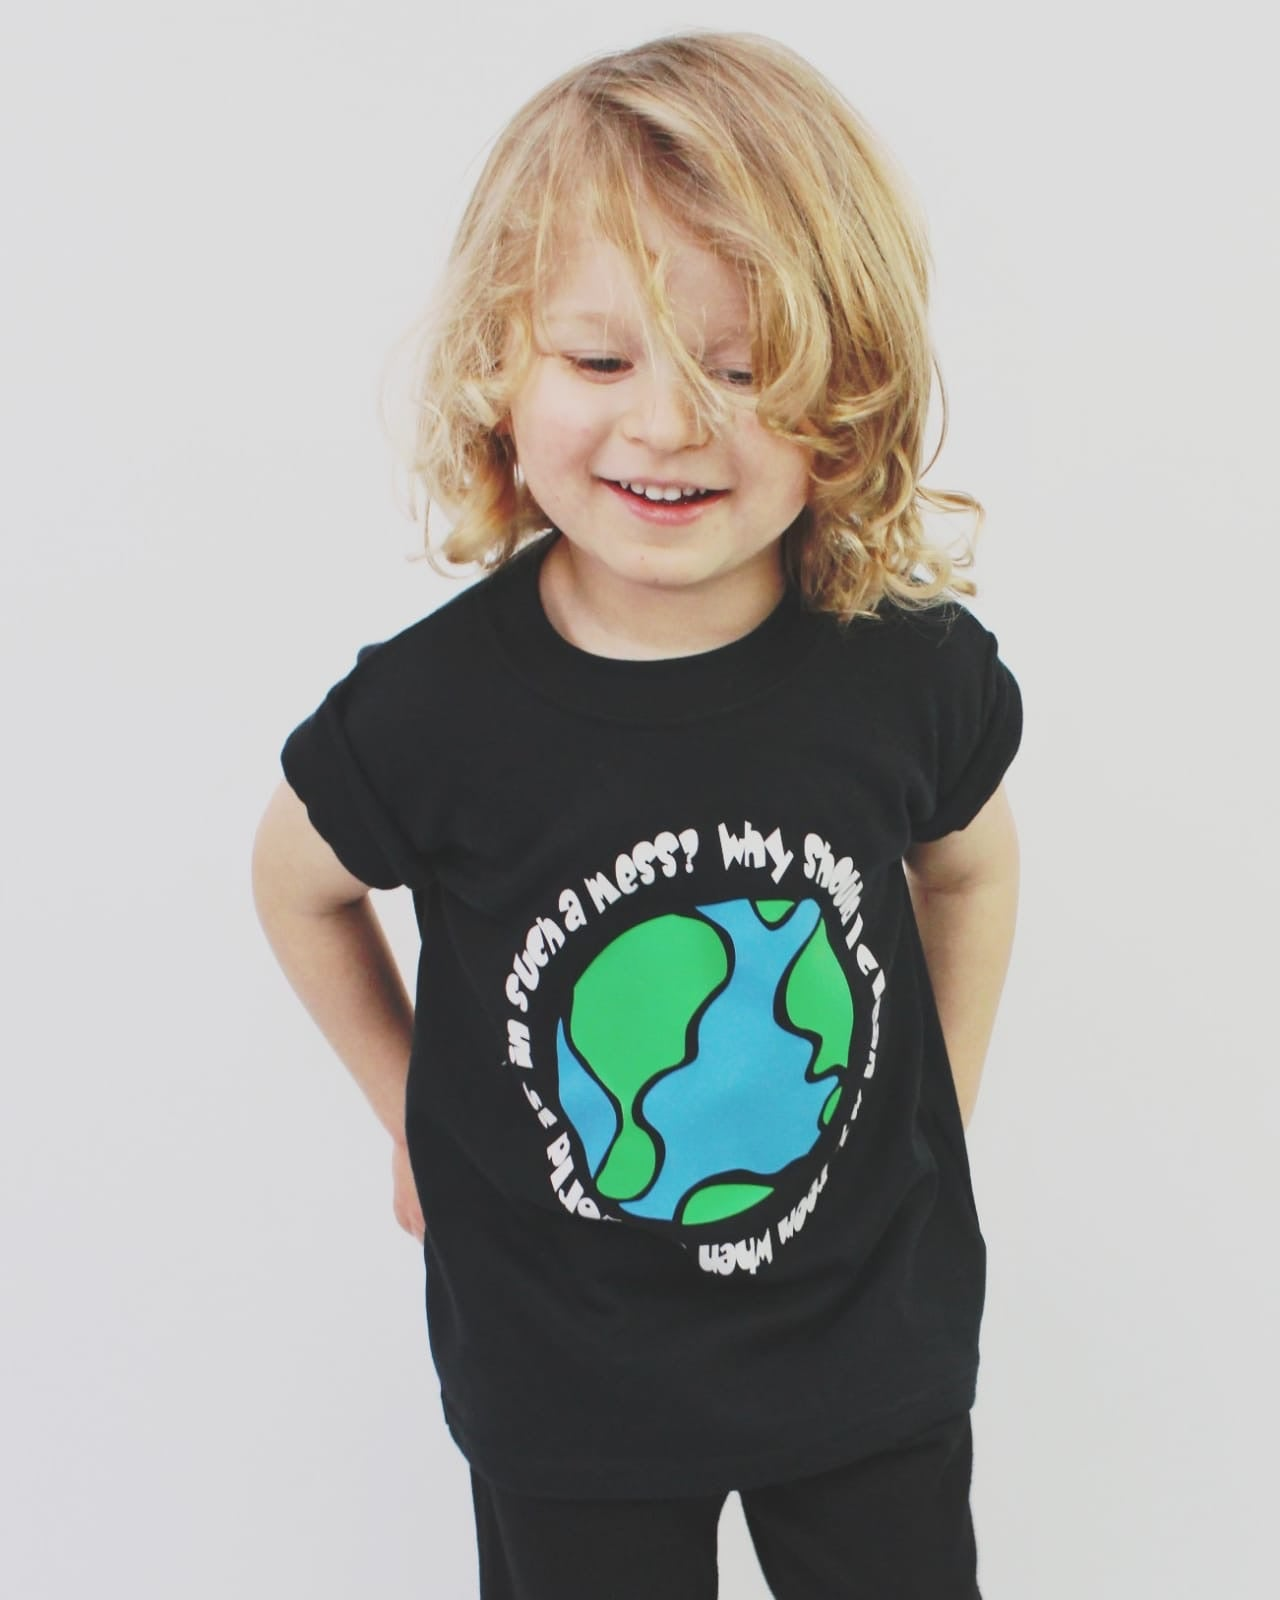 Messy planet tee